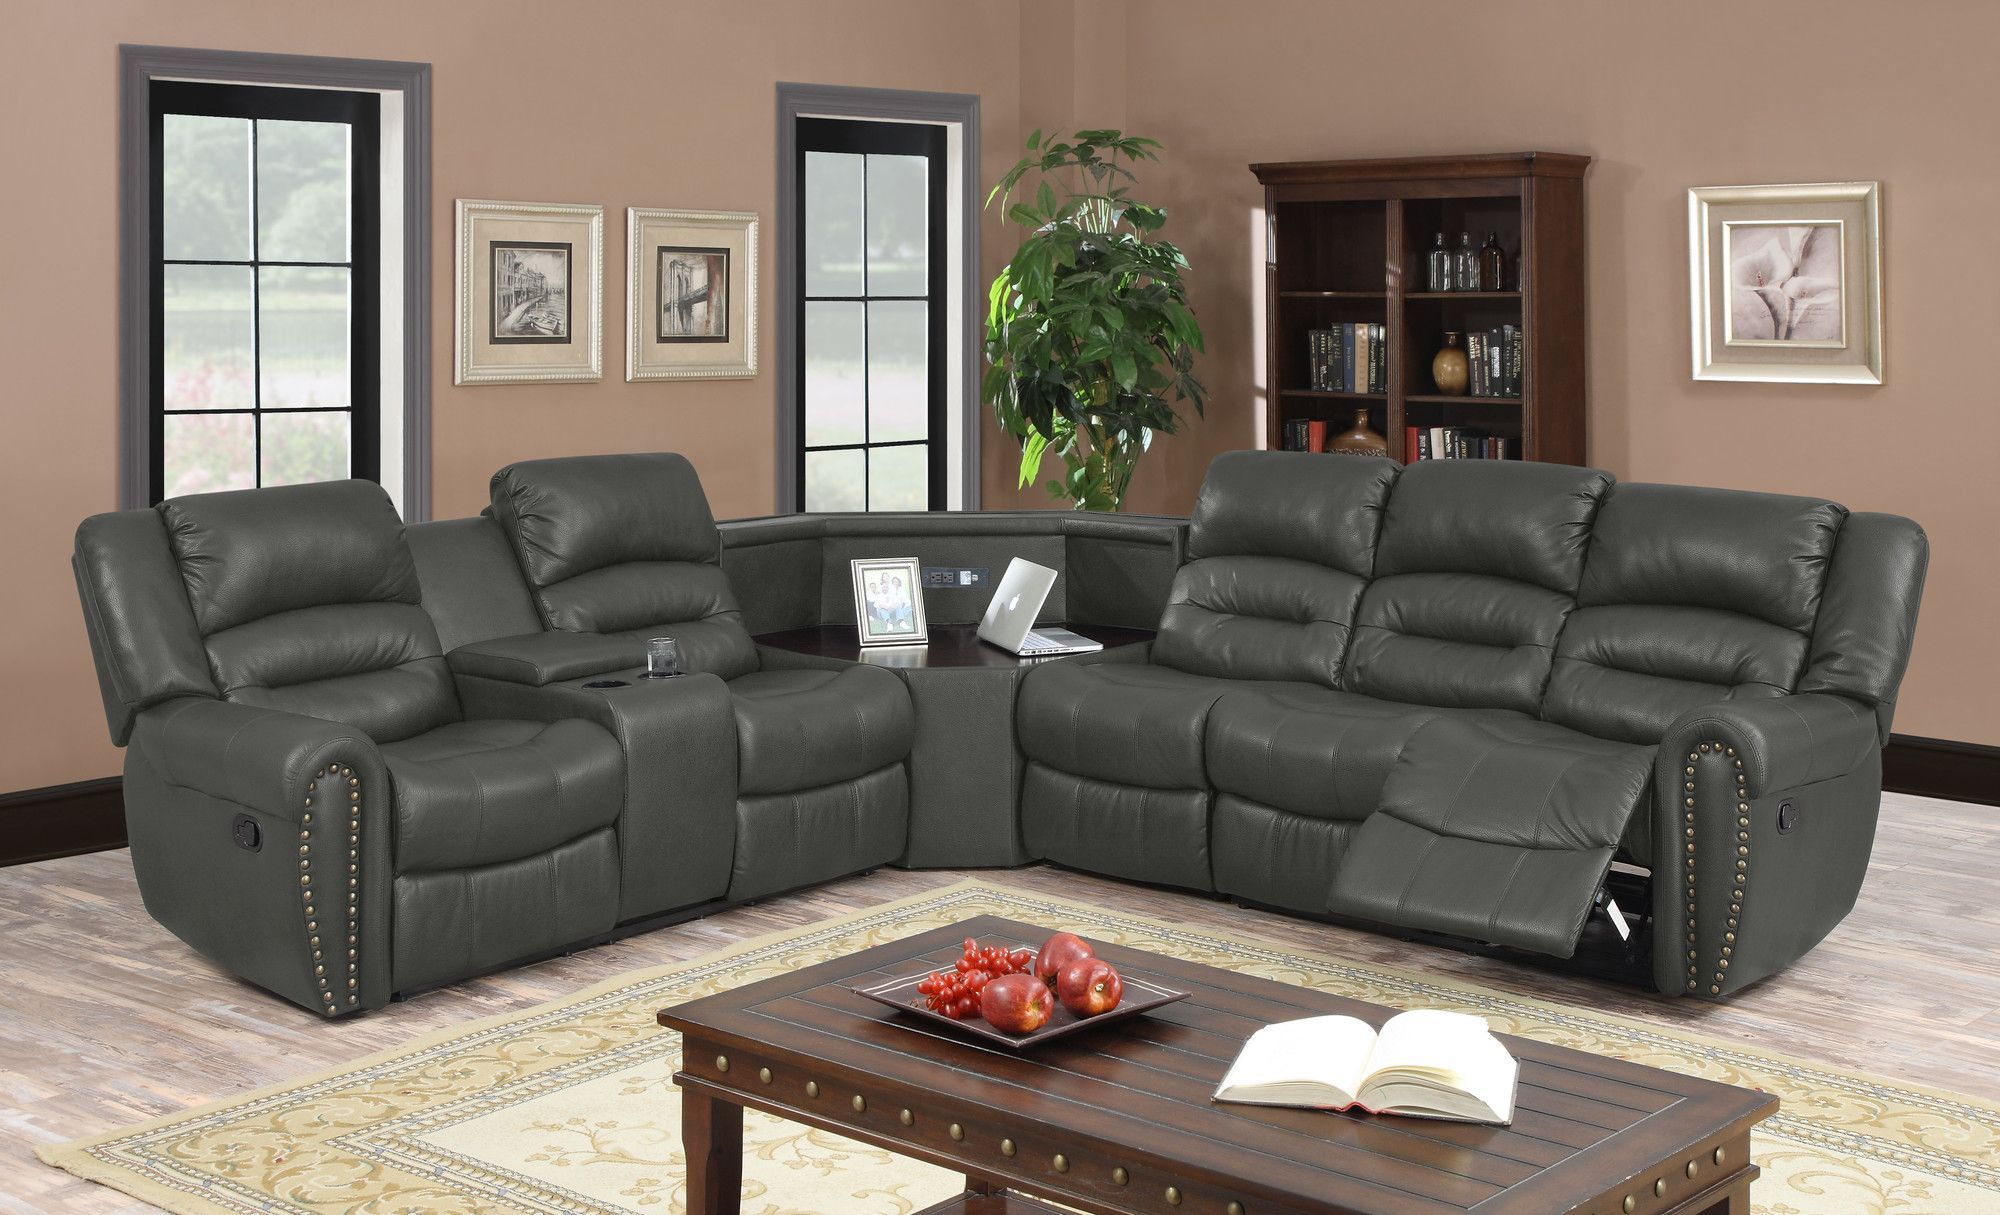 Amelia Sectional Reclining Sectional Sectional Sofa Couch